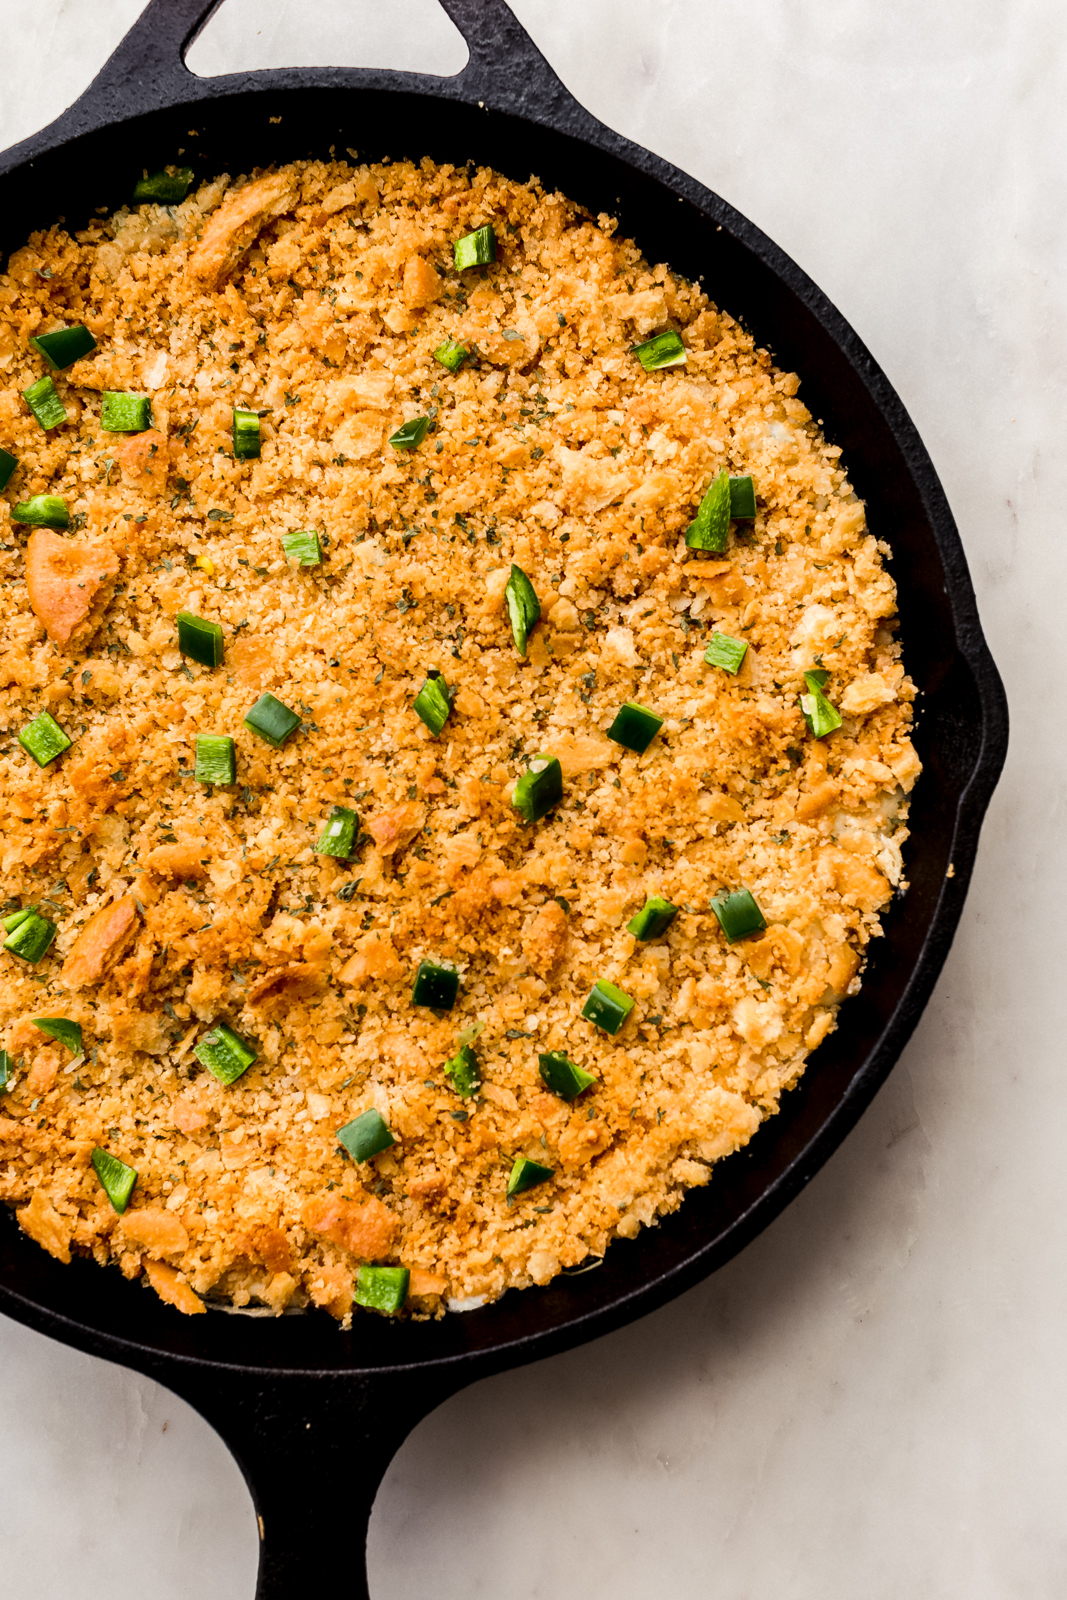 undisturbed jalapeno popper dip topped with cracker crumb fresh out of the oven